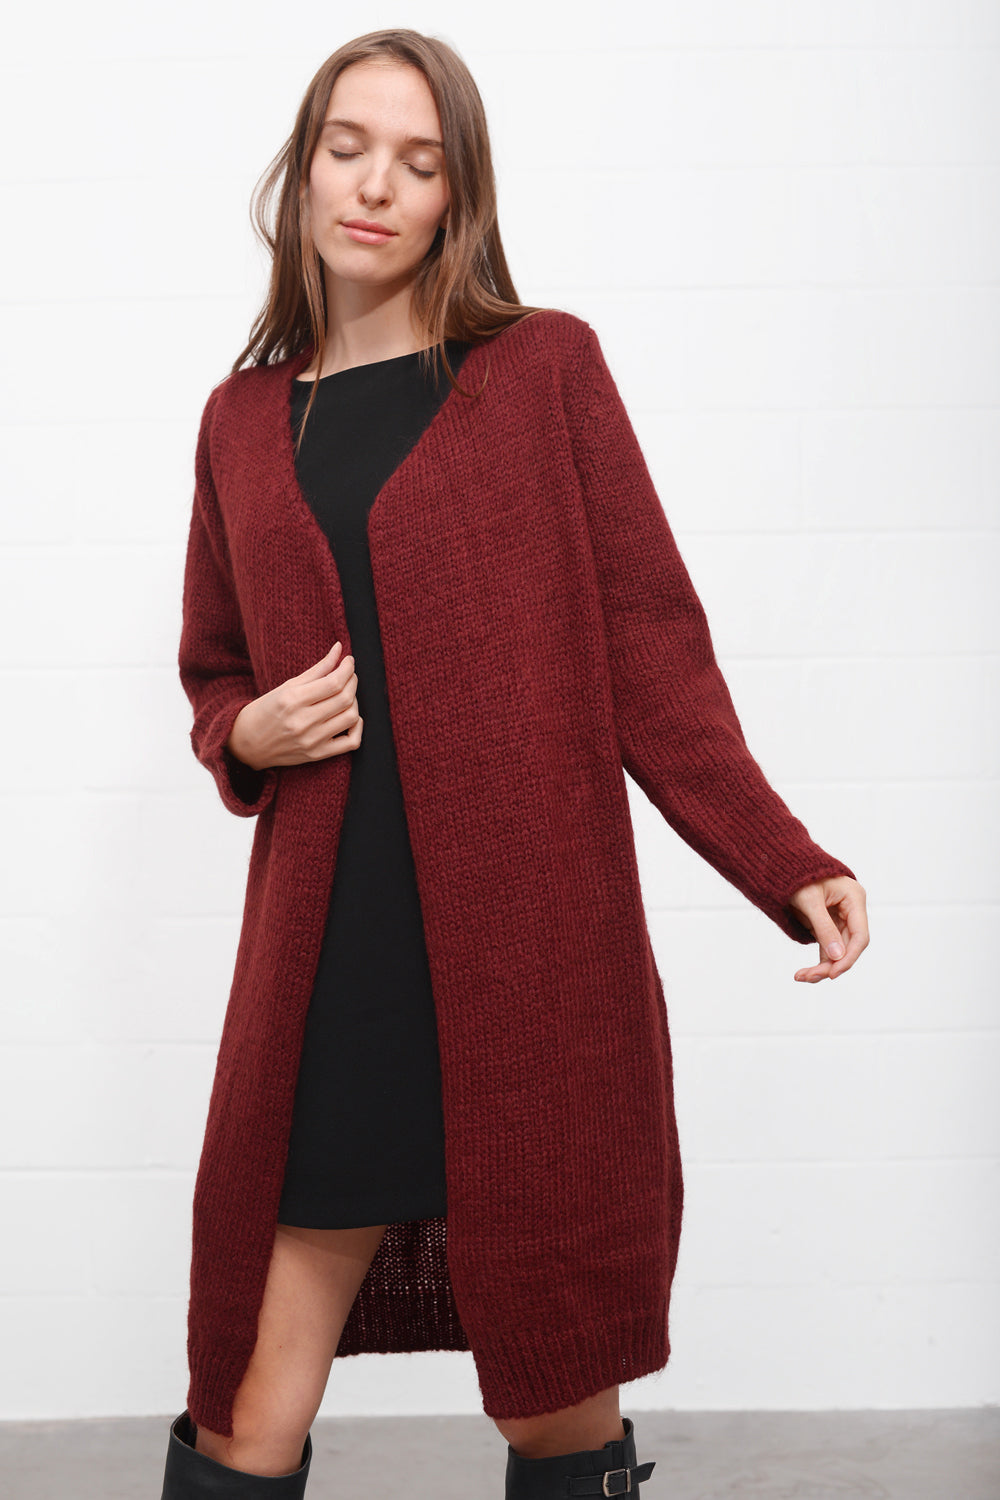 Mastice Strickcardigan - bordo